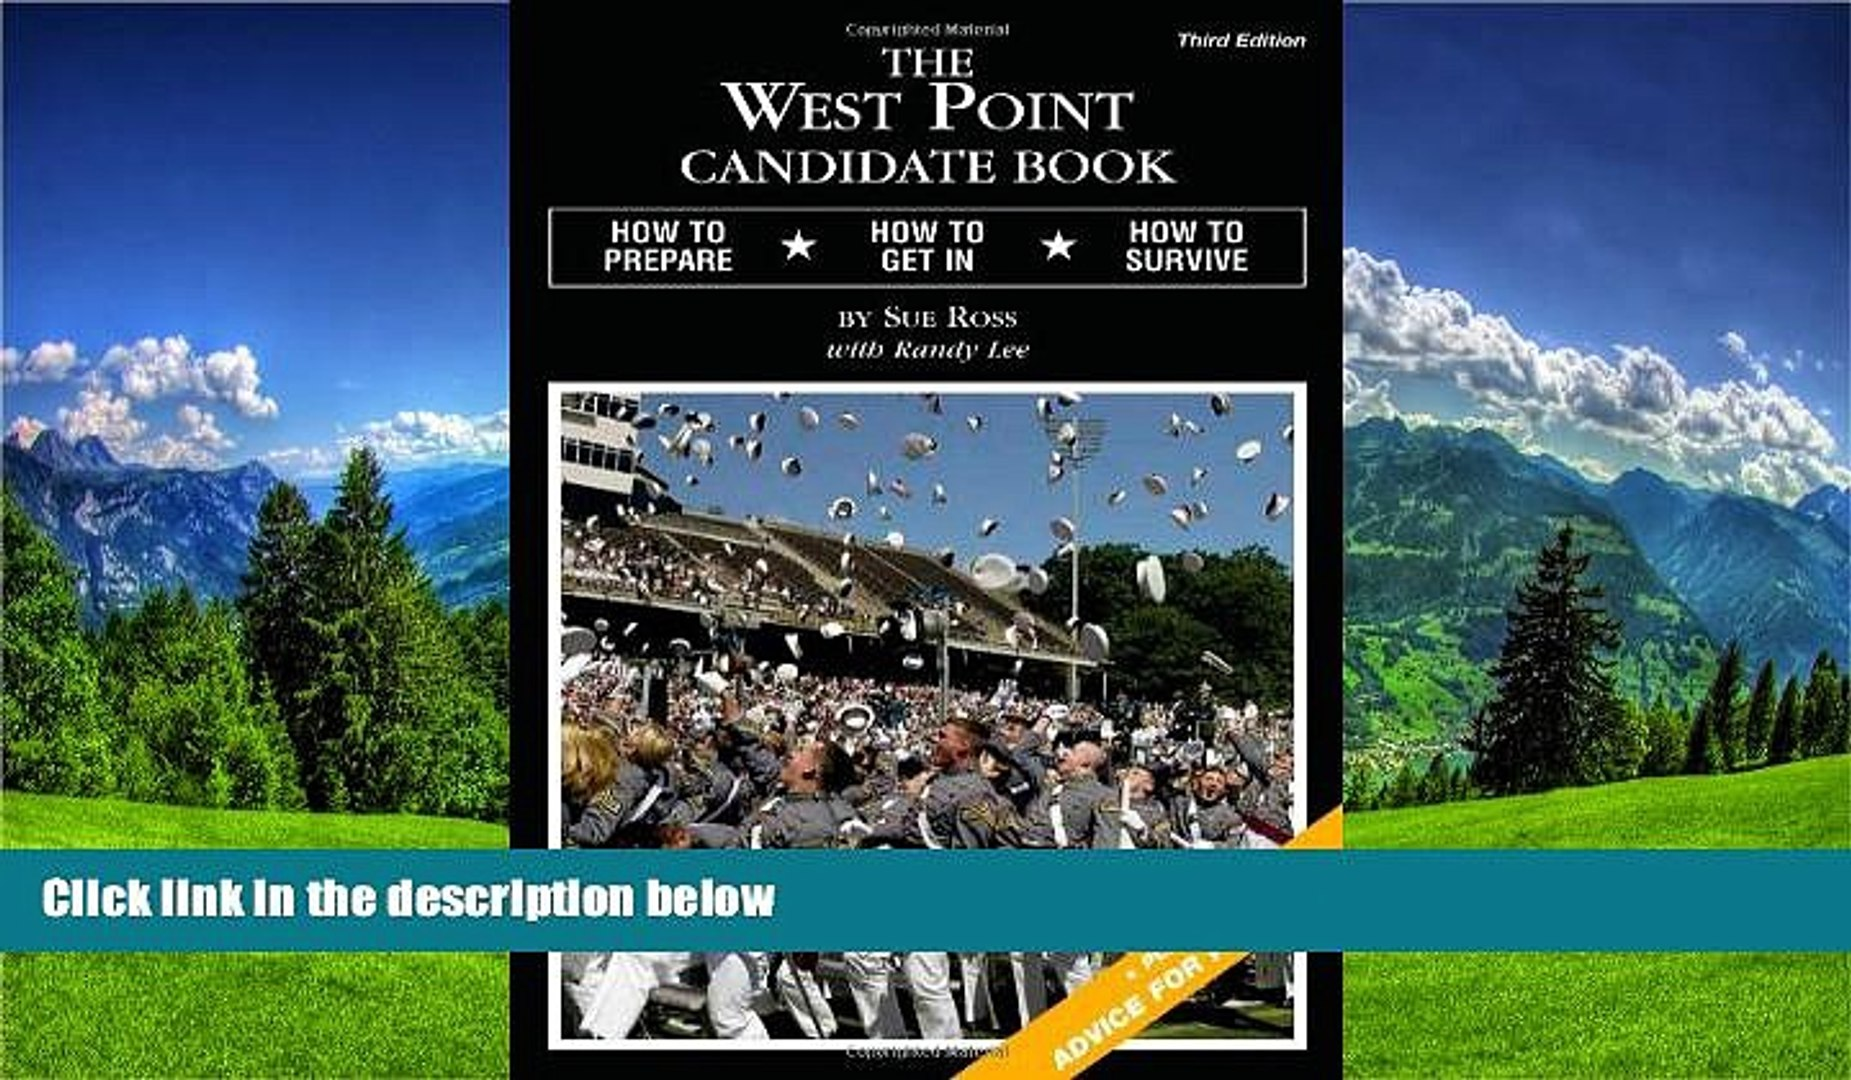 FREE DOWNLOAD  The West Point Candidate Book: How to Prepare, How to Get In, How to Survive